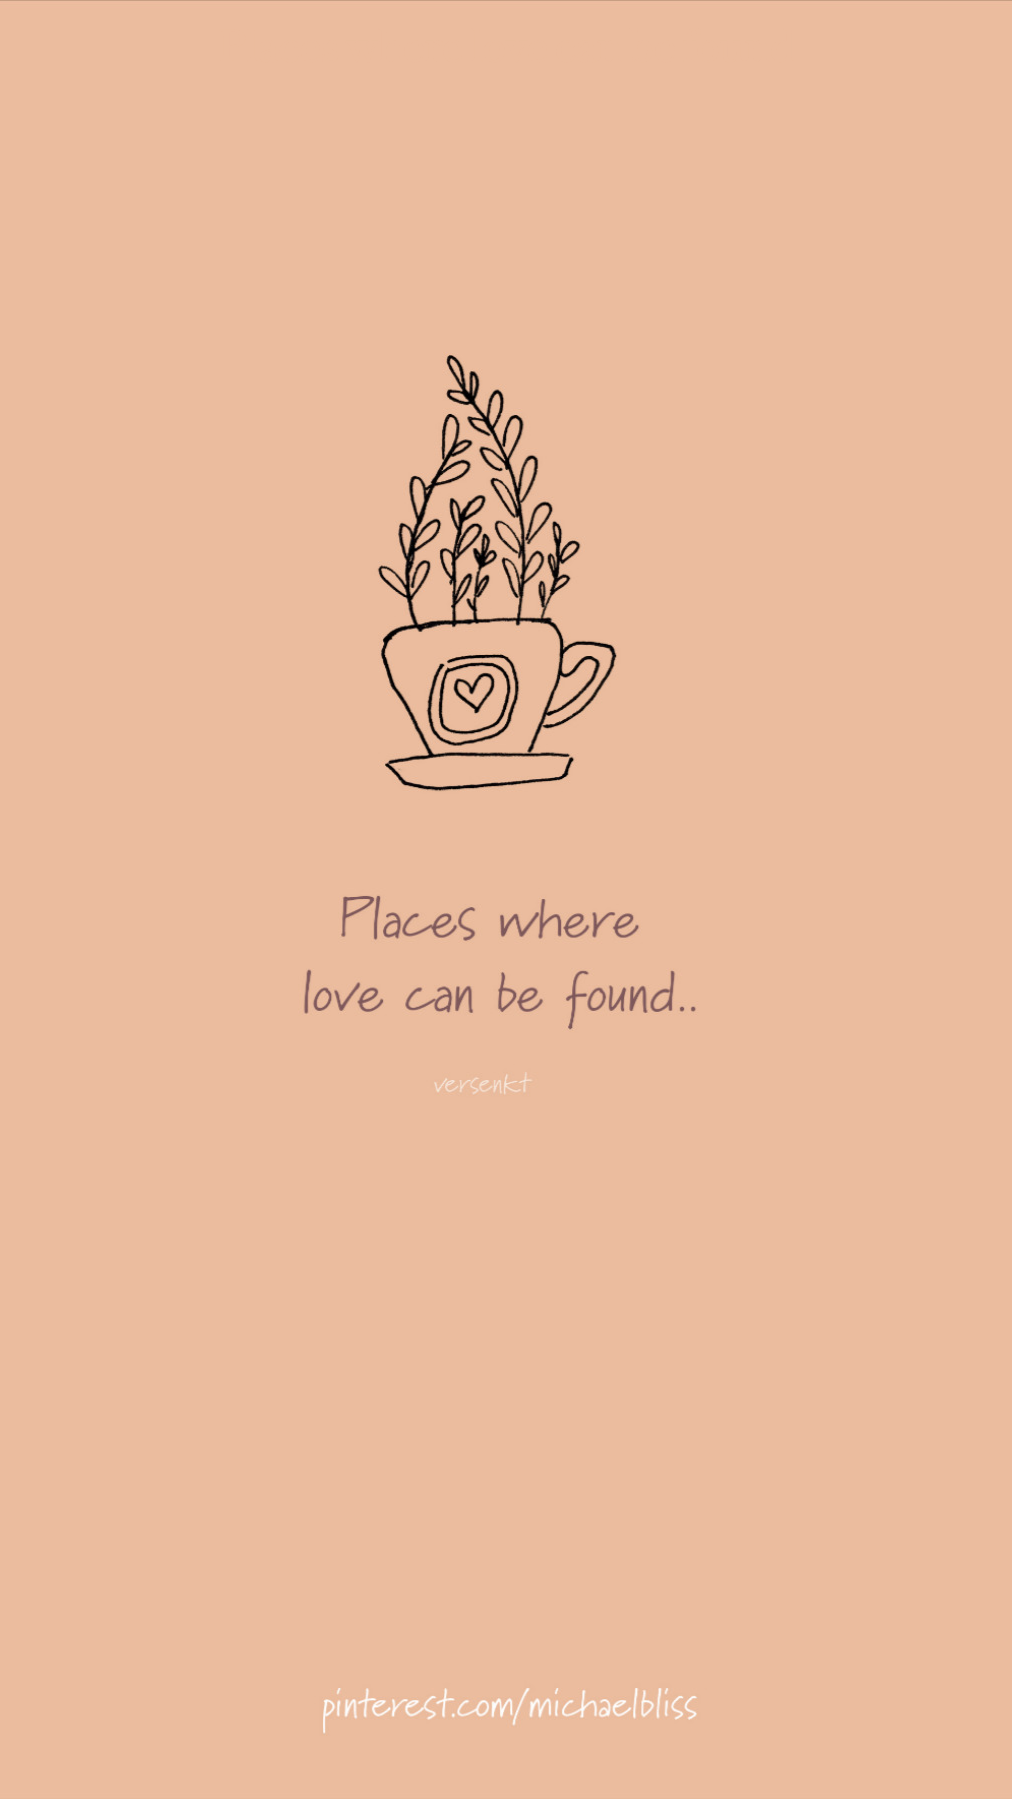 Places where love can be found